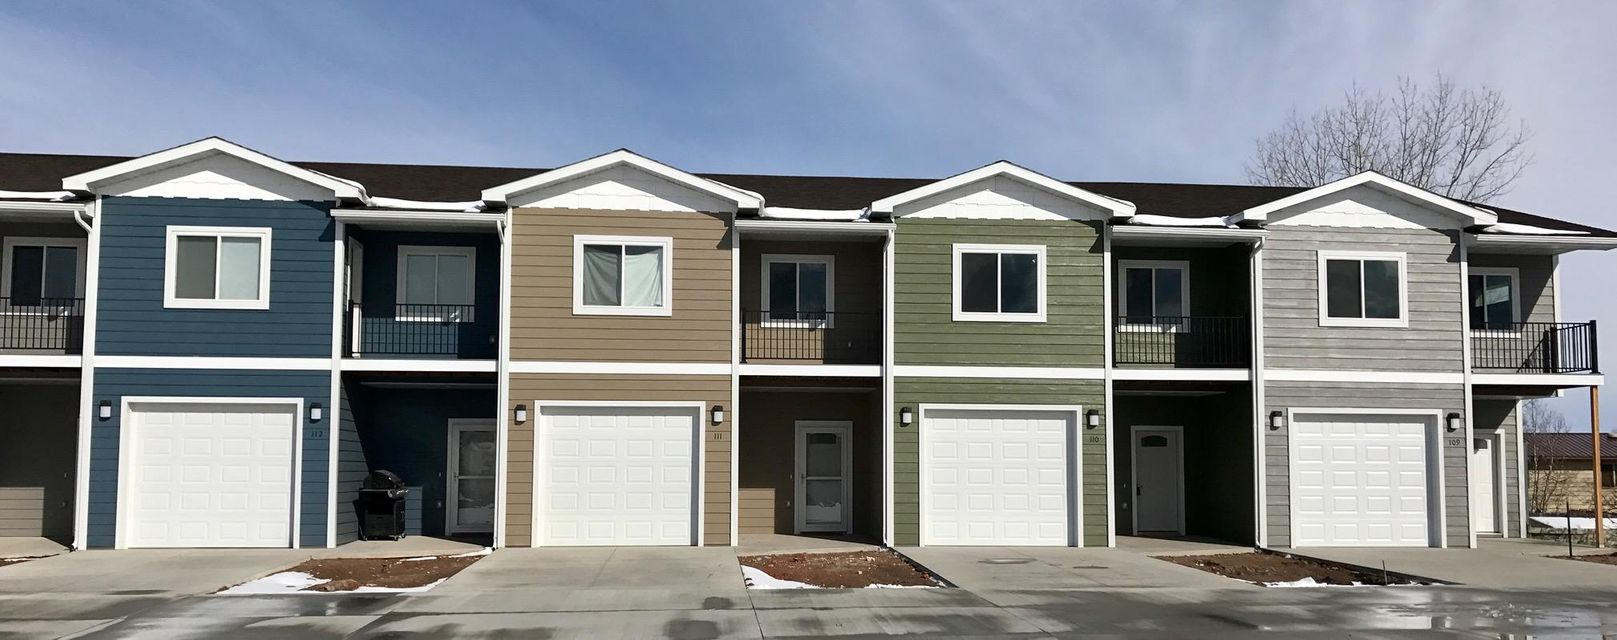 116 Trails West Circle, Ranchester, WY 82839